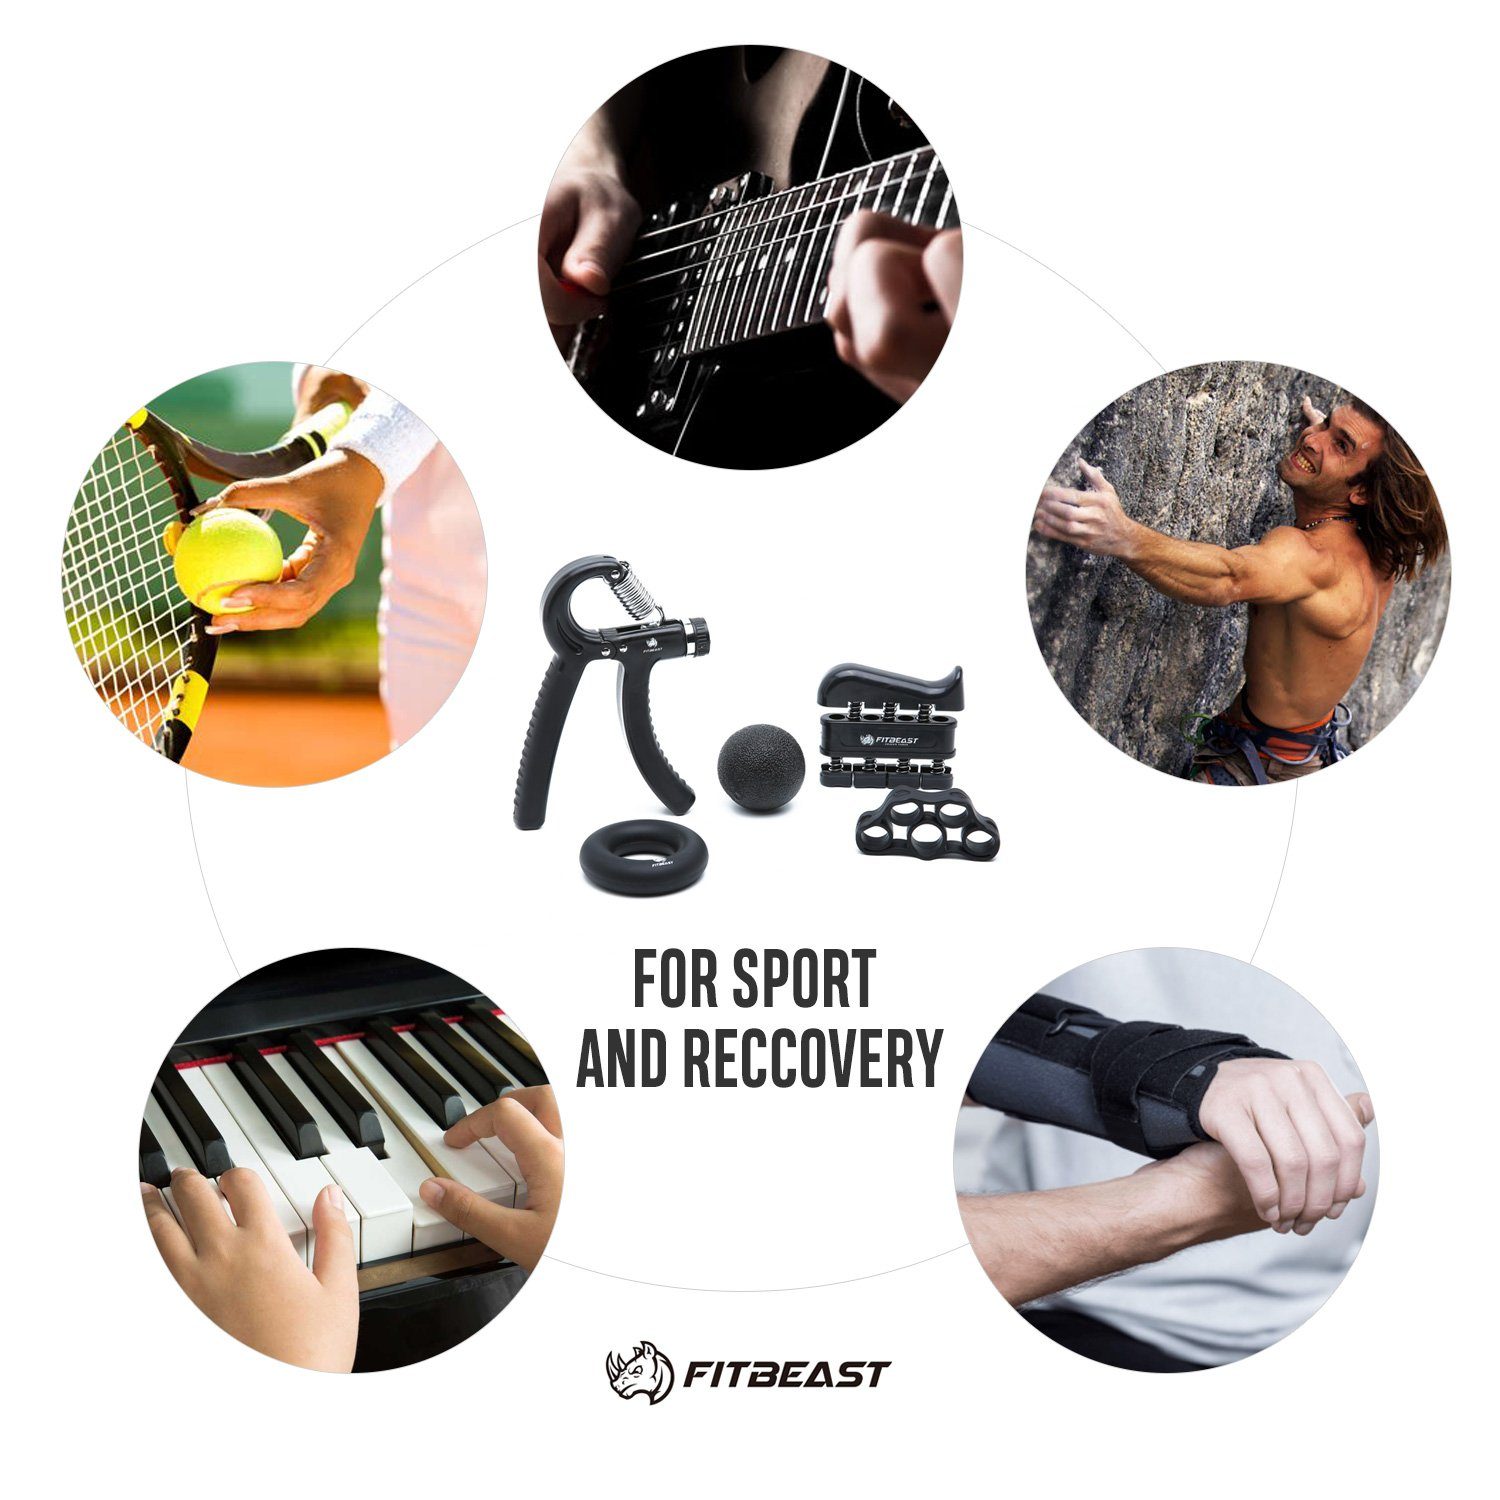 Hand Grip Strengthener Workout Kit (5 Pack) FitBeast Forearm Grip Adjustable Resistance Hand Gripper, Finger Exerciser, Finger Stretcher, Grip Ring & Stress Relief Grip Ball for Athletes and Musicians by FitBeast (Image #7)